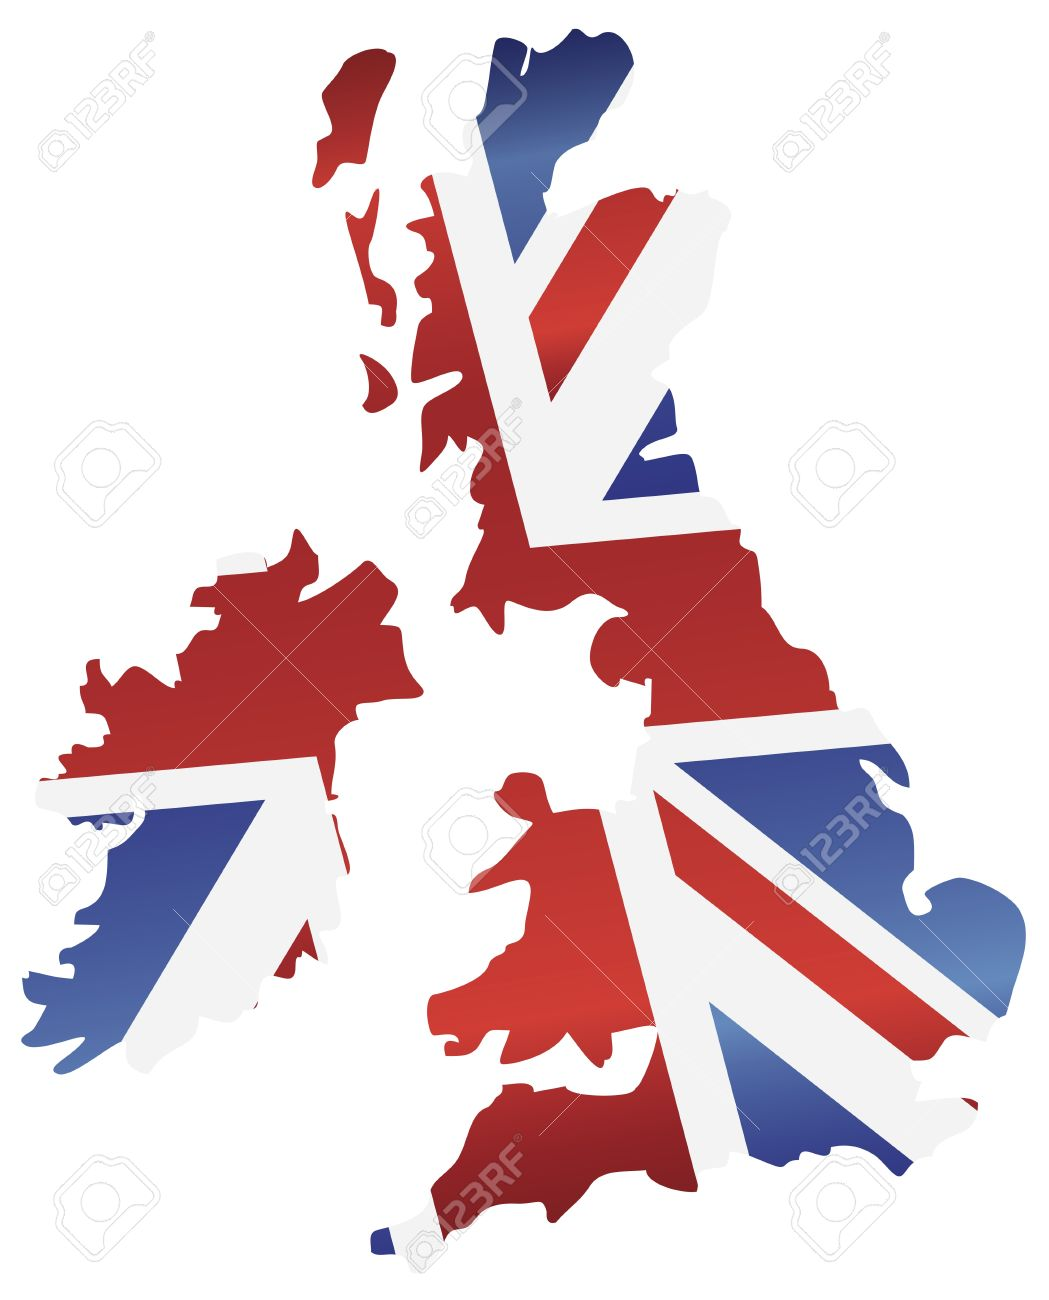 UK Great Britain Union Jack Flag In Map Silhouette Illustration.